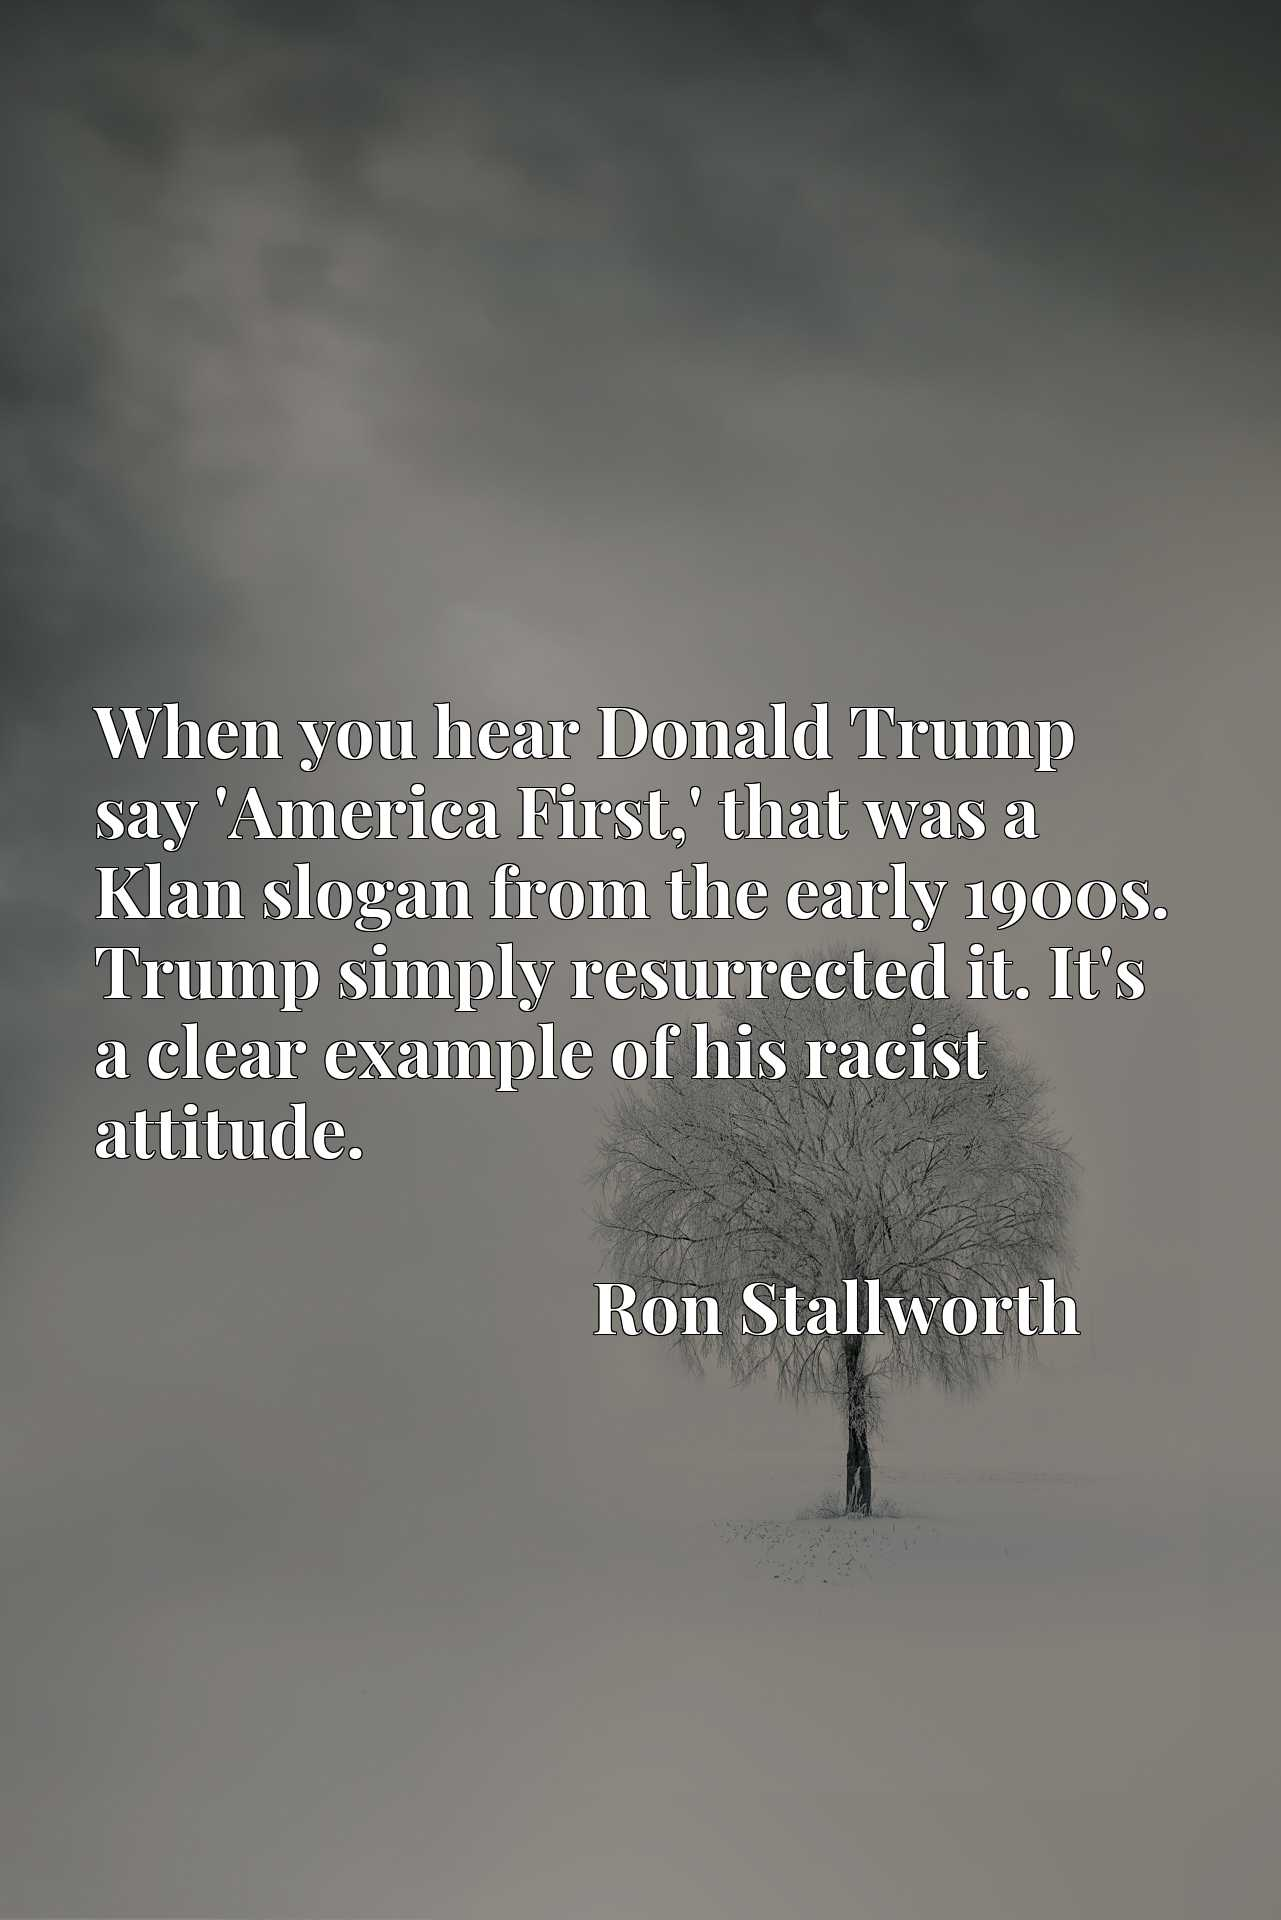 When you hear Donald Trump say 'America First,' that was a Klan slogan from the early 1900s. Trump simply resurrected it. It's a clear example of his racist attitude.